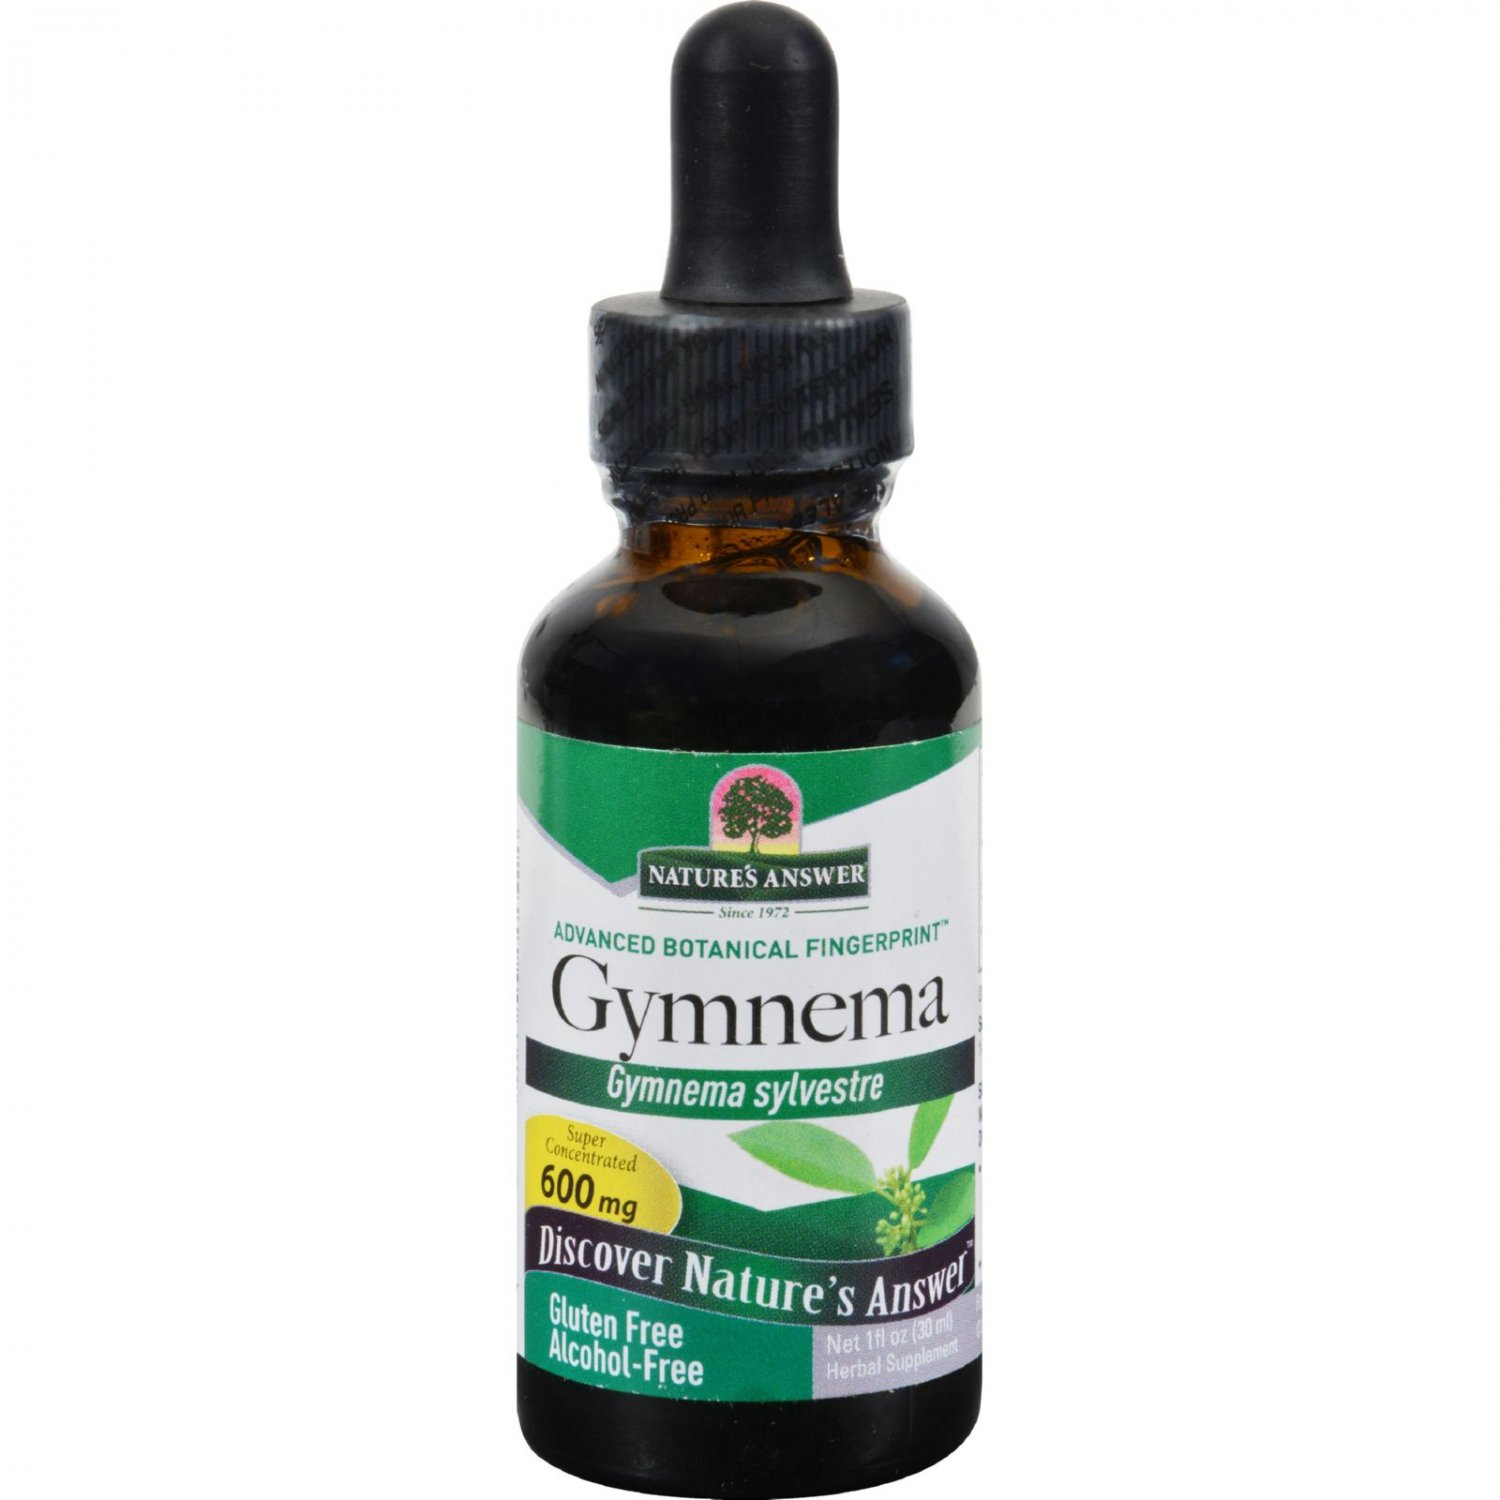 Nature's Answer Gymnema Leaf Alcohol Free - 1 fl oz